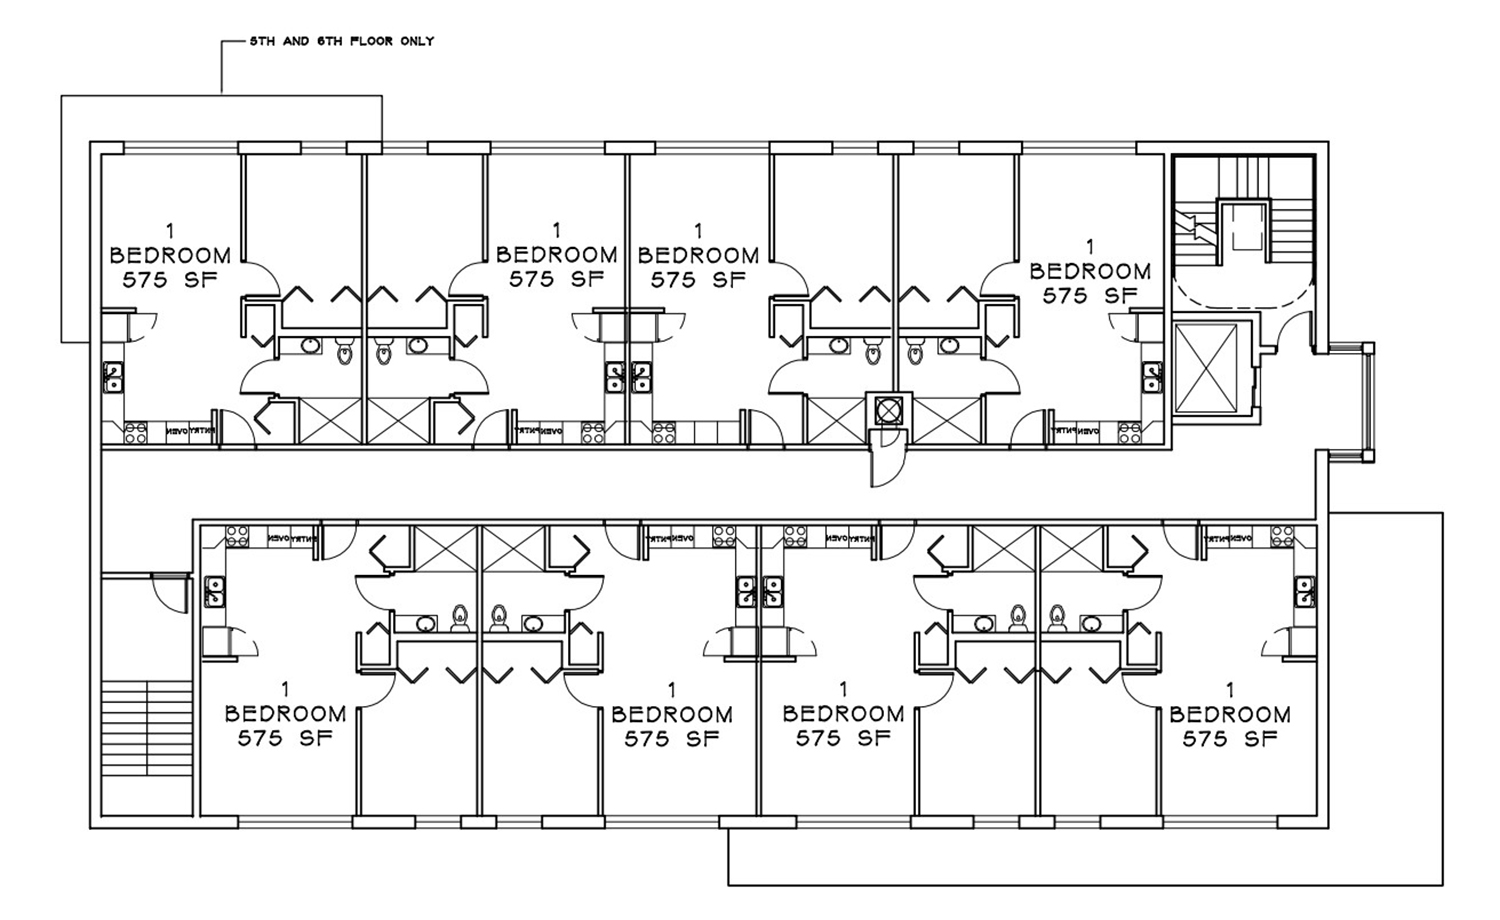 Typical Floor Plan for 835 W Addison Street. Drawing by Weese Langley Weese